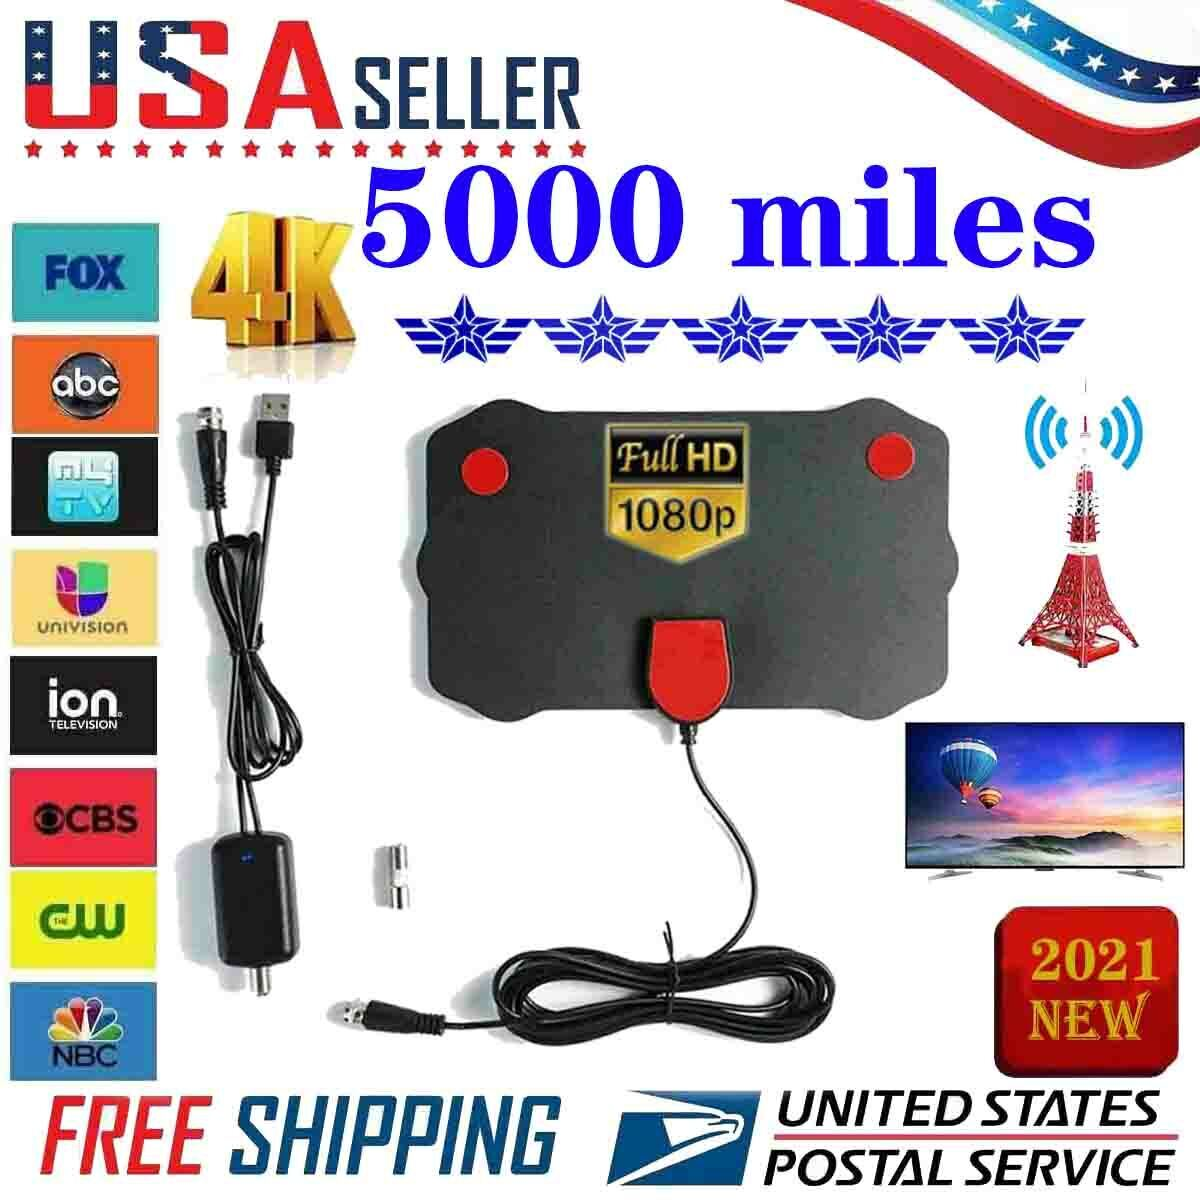 In 2021, the latest 5000-mile clear indoor digital TV HD TV antenna. Available Now for 10.00